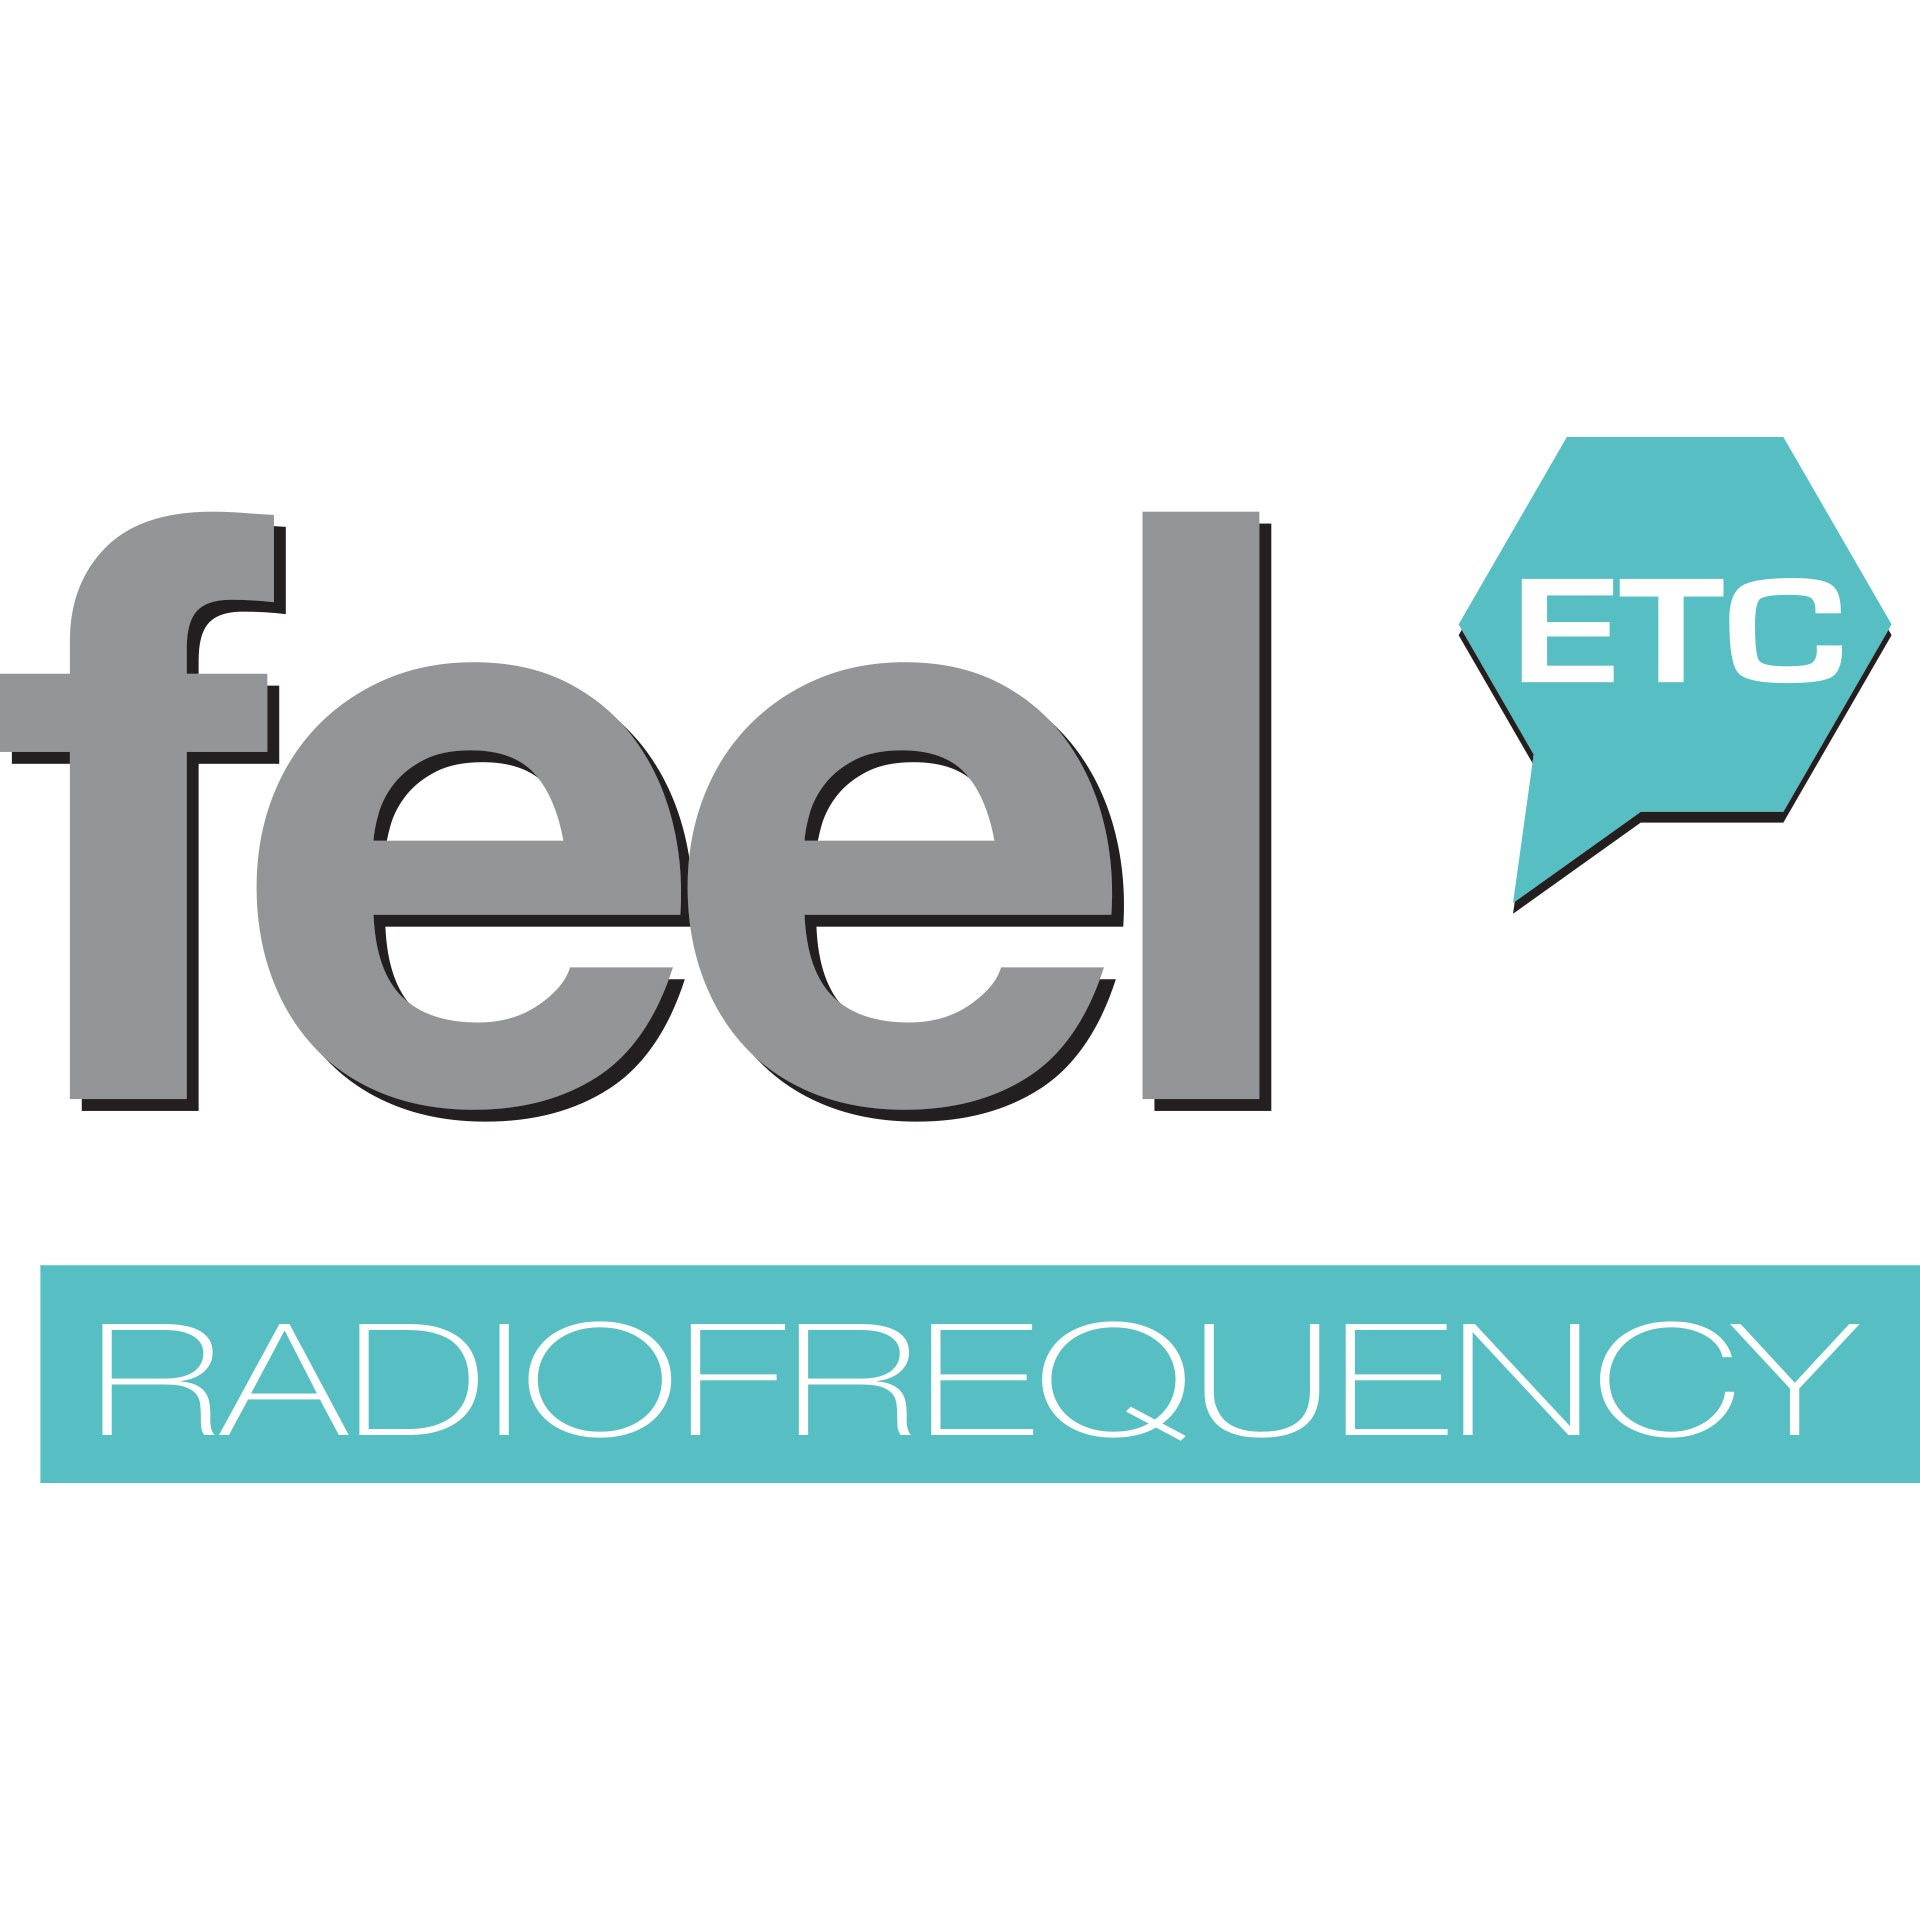 Feel radiofrequency Tuenda